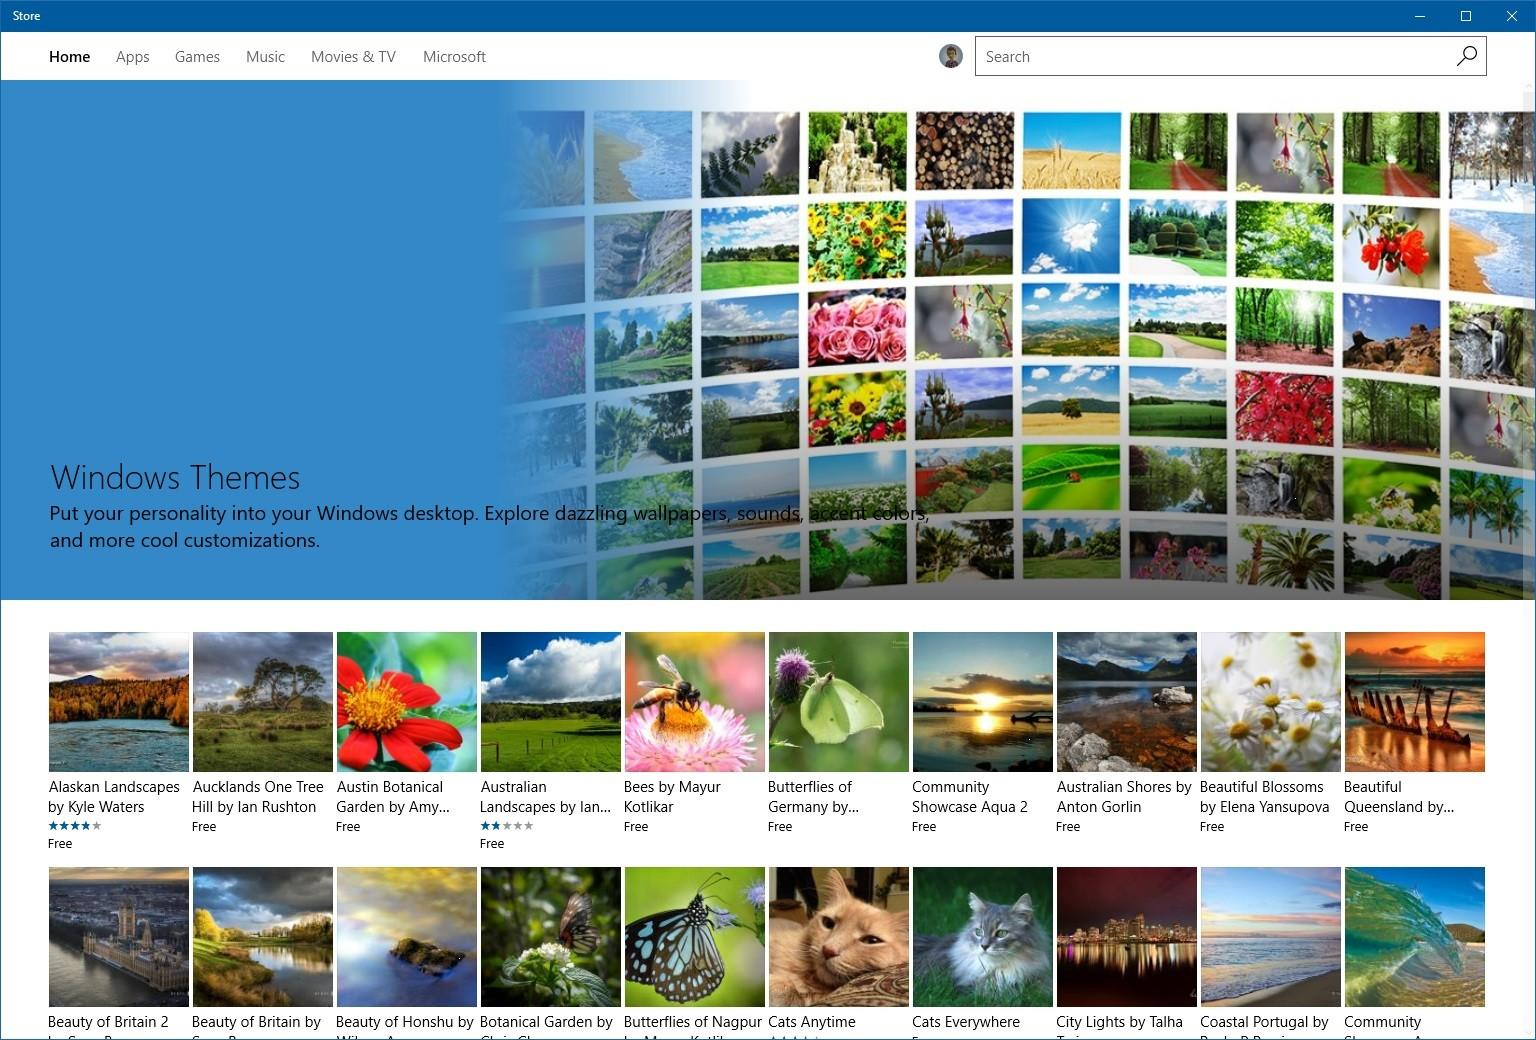 告別單調:正經的Windows 10 主題終於來了 - XFastest - microsoft-officially-announces-themes-for-windows-10-511802-2.jpg